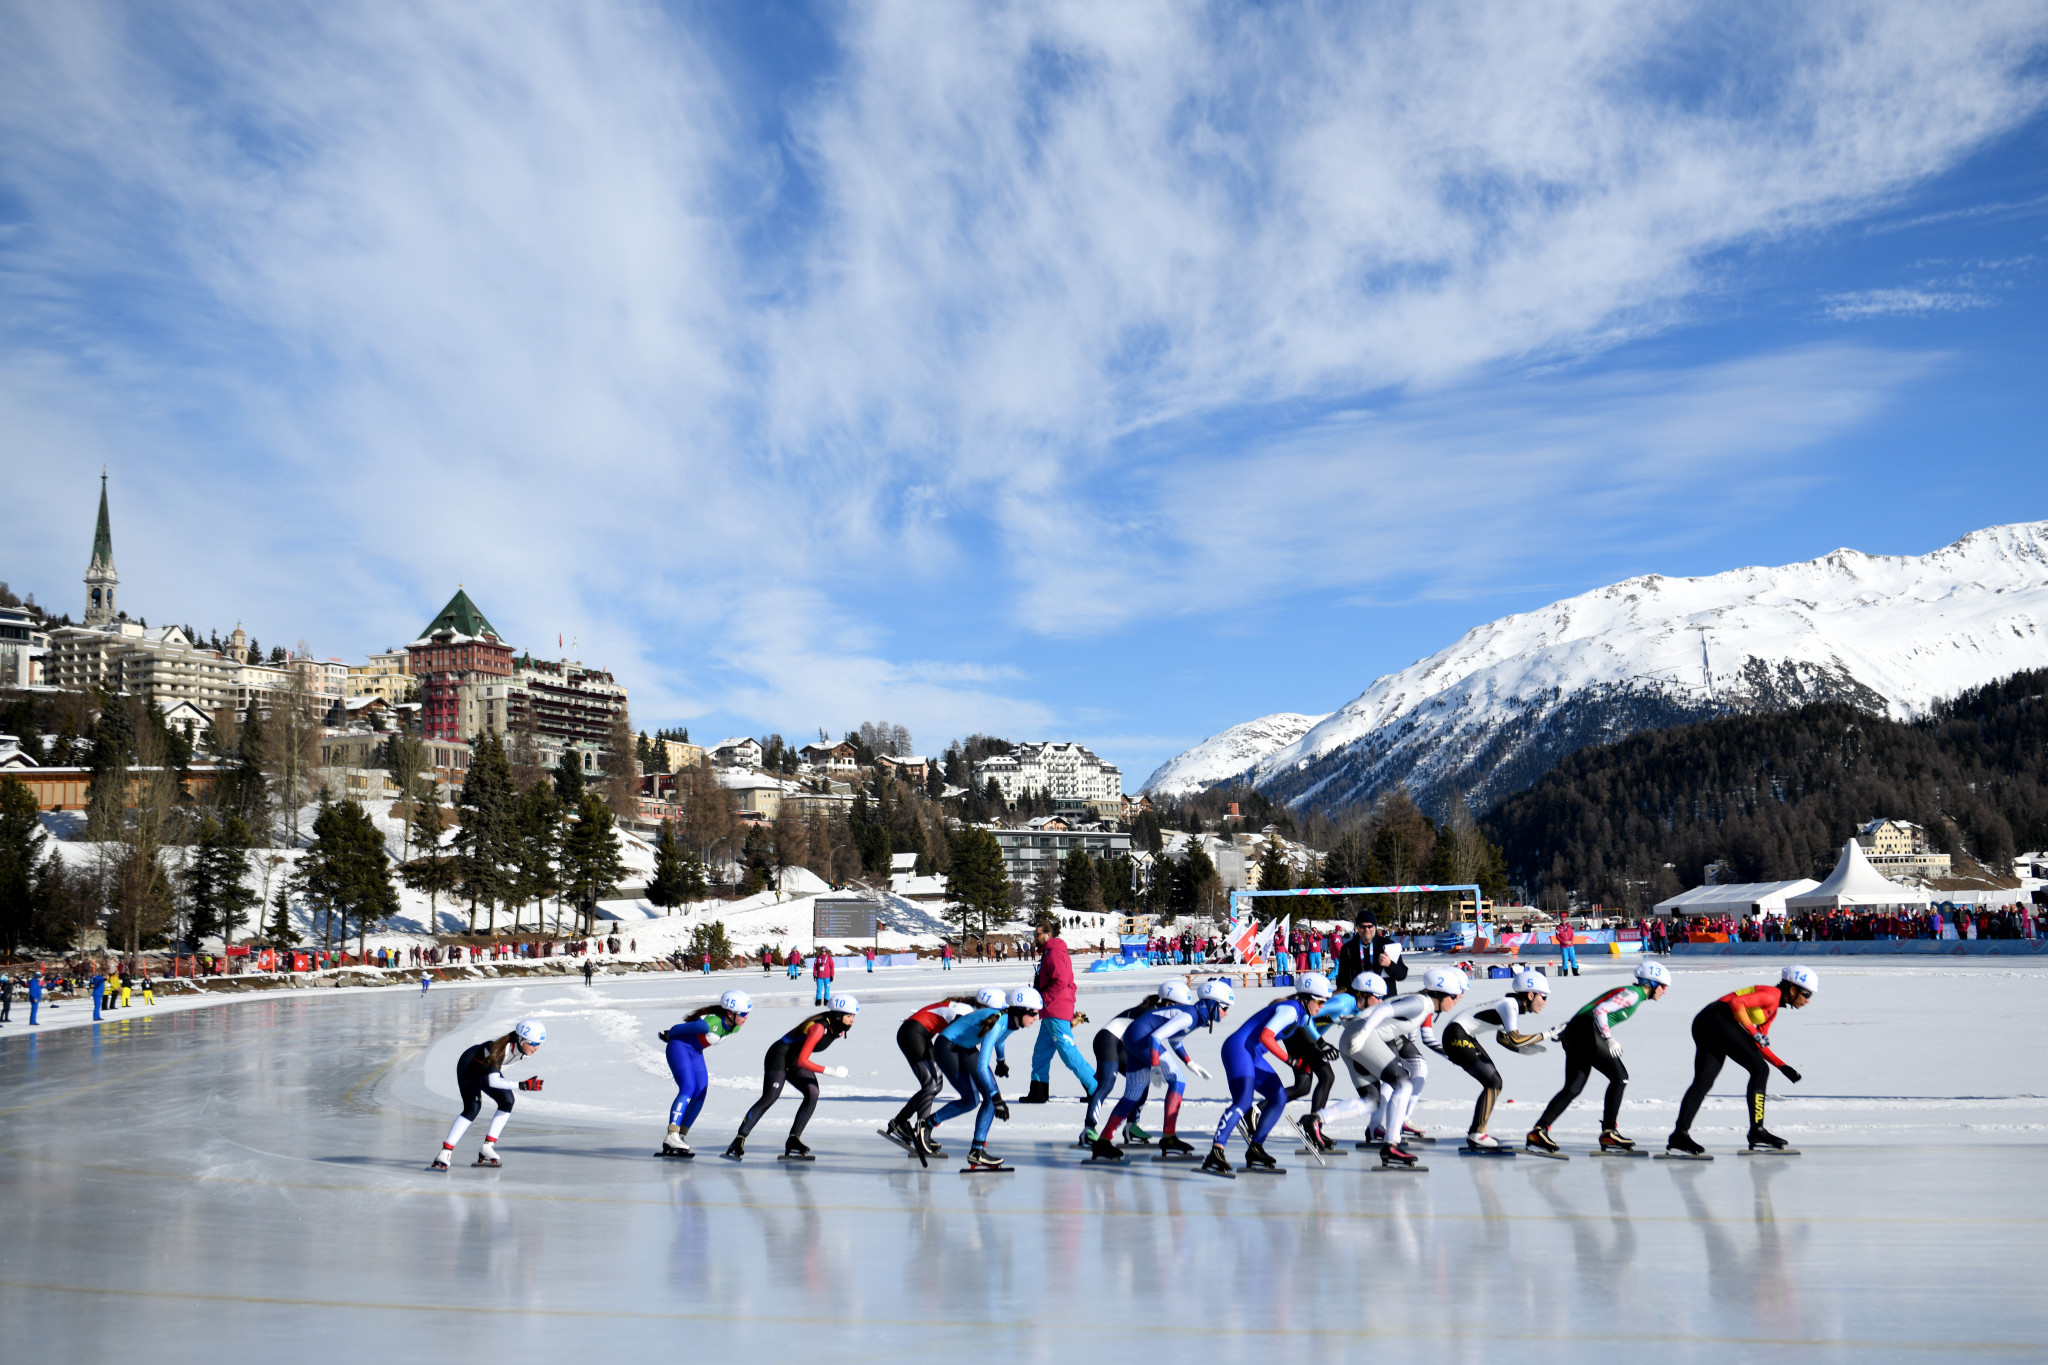 The IOC executive director for the Olympic Games said Lausanne 2020 had been a resounding success ©Getty Images